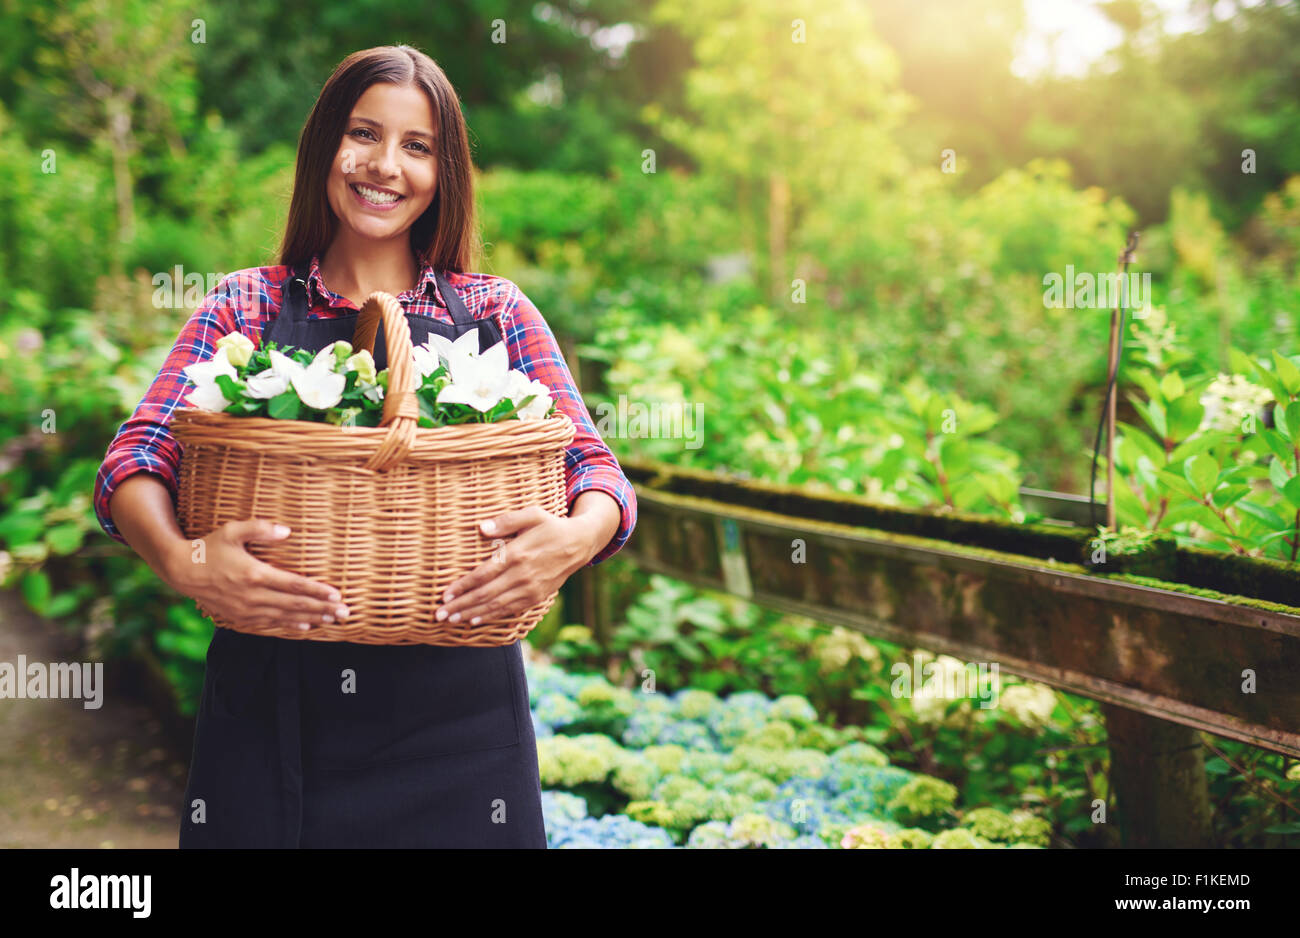 Young woman florist working outdoors at the nursery gathering flowers in a large wicker basket she is holding in - Stock Image